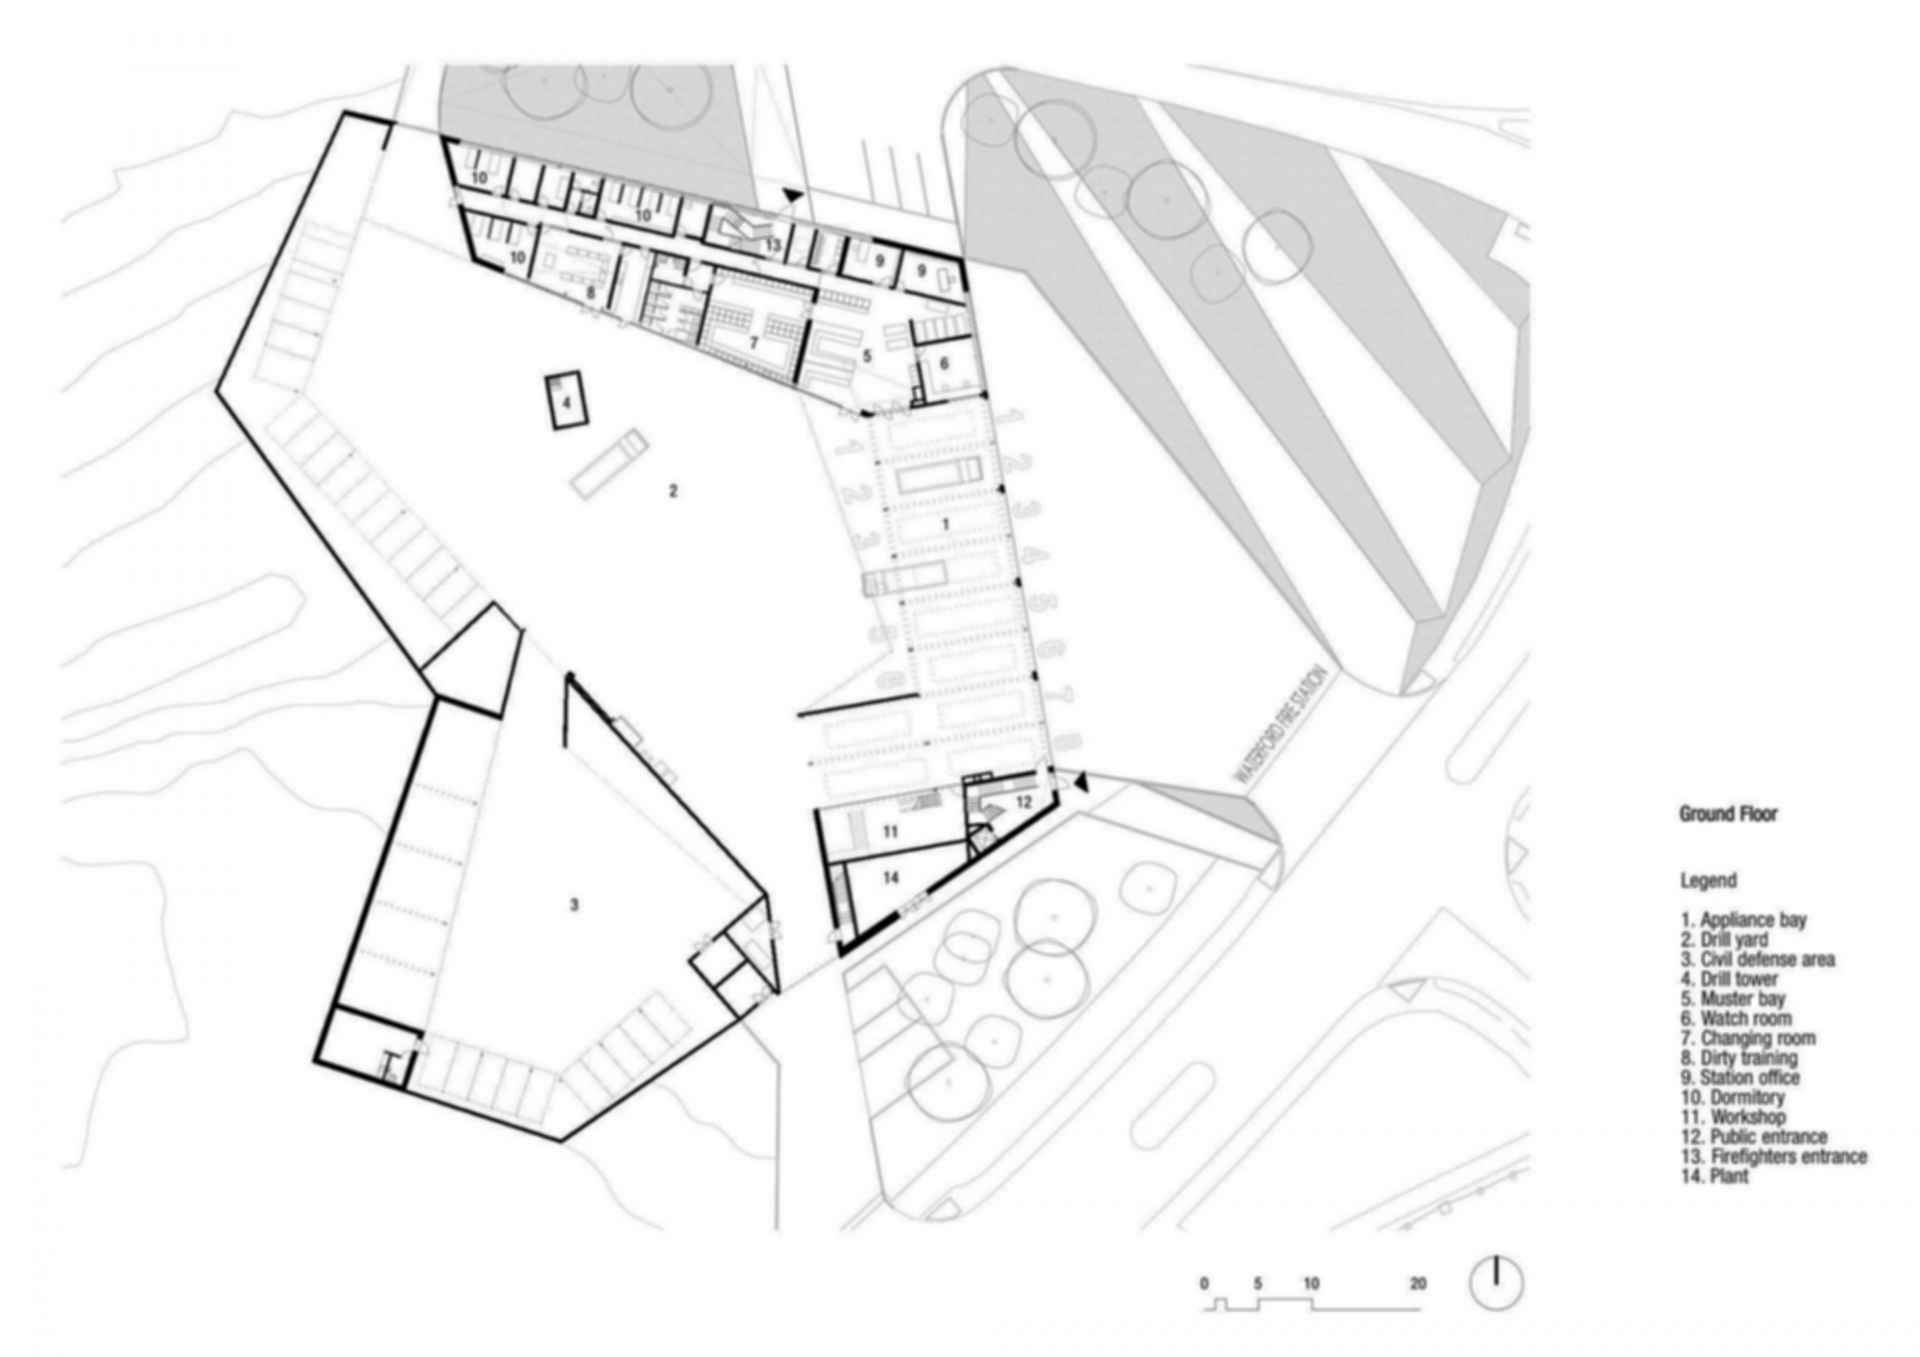 Waterford Fire Station - Floor Plan